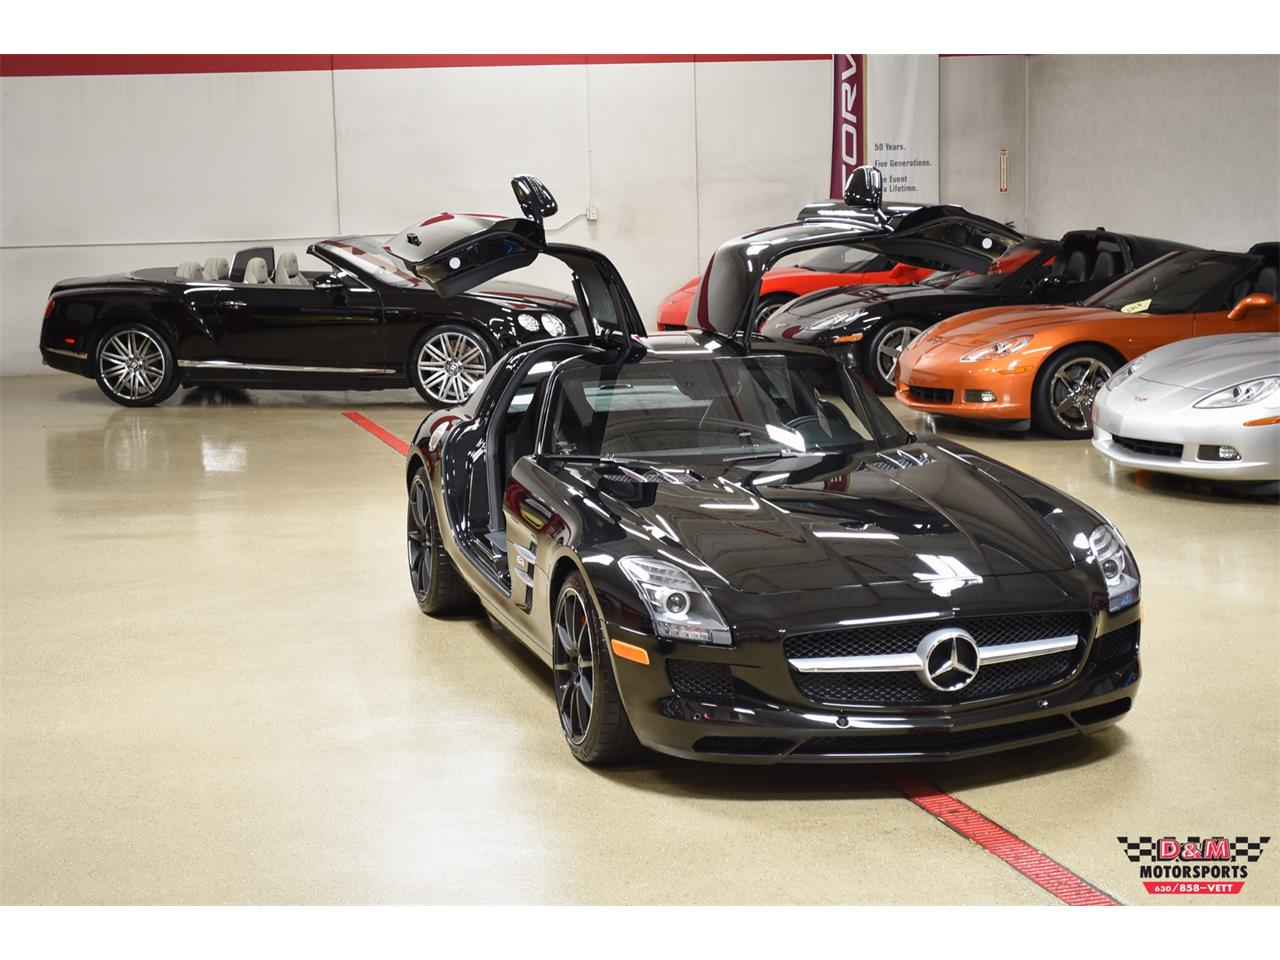 Large Picture of '12 Mercedes-Benz SLS AMG Offered by D & M Motorsports - PXCB